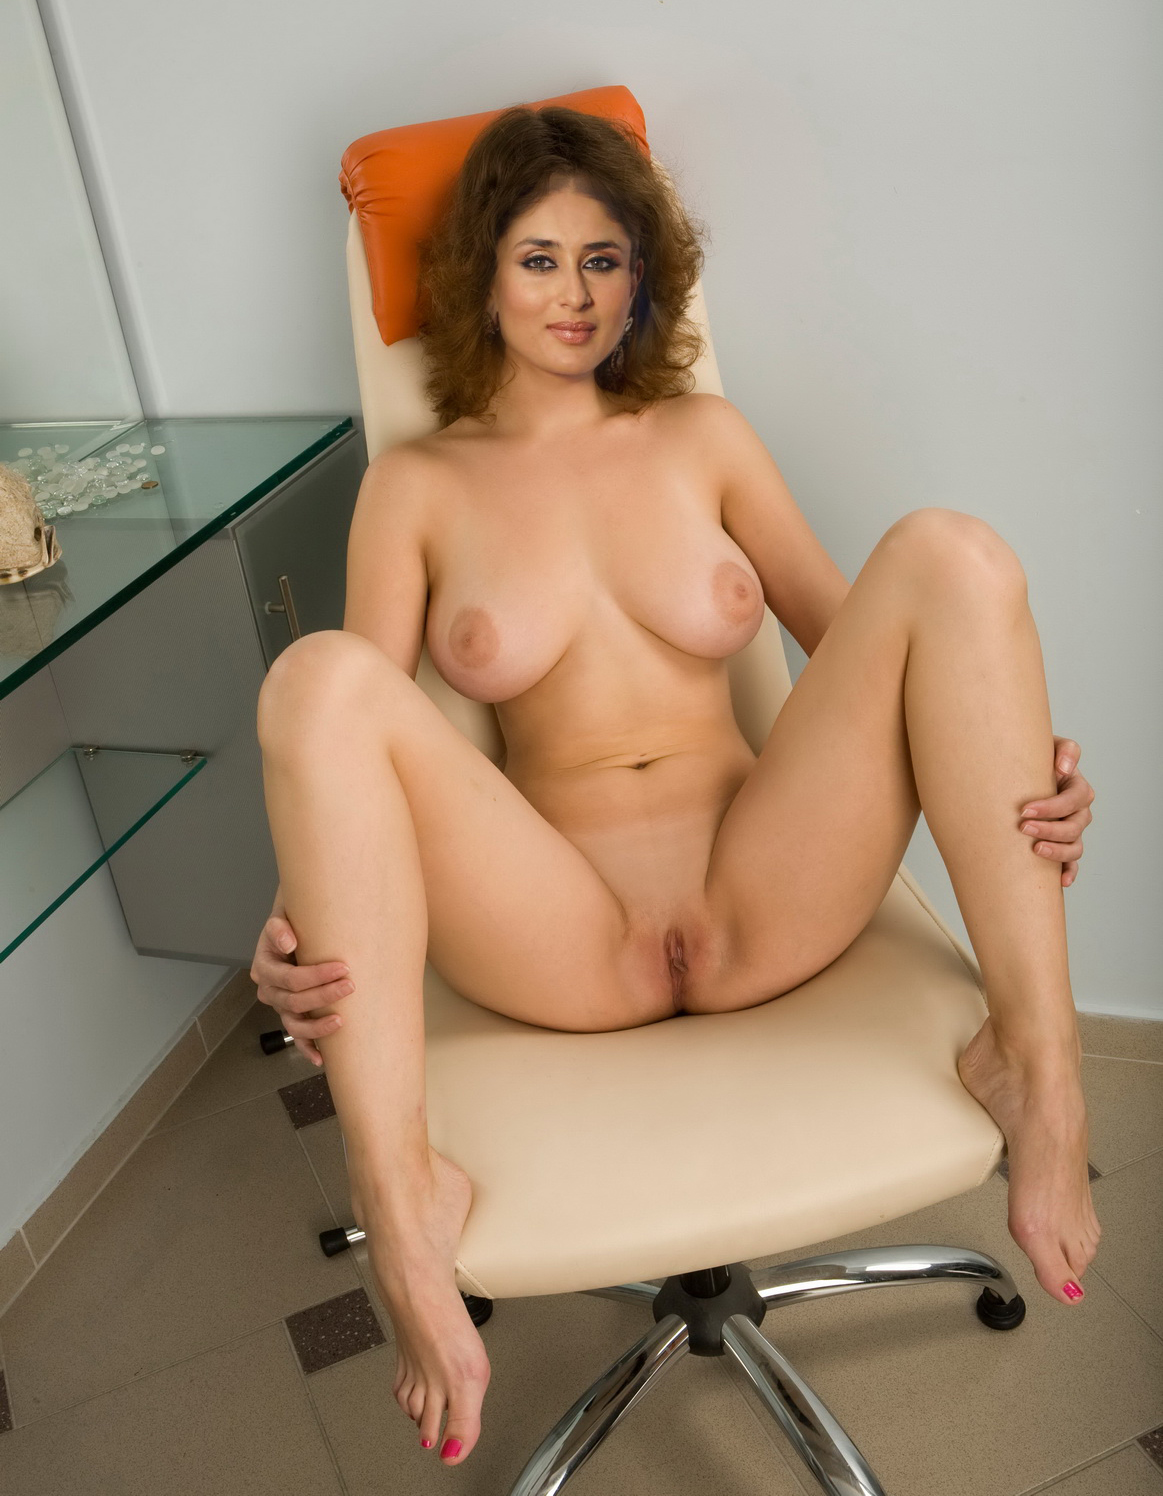 Actressess nude bollywood